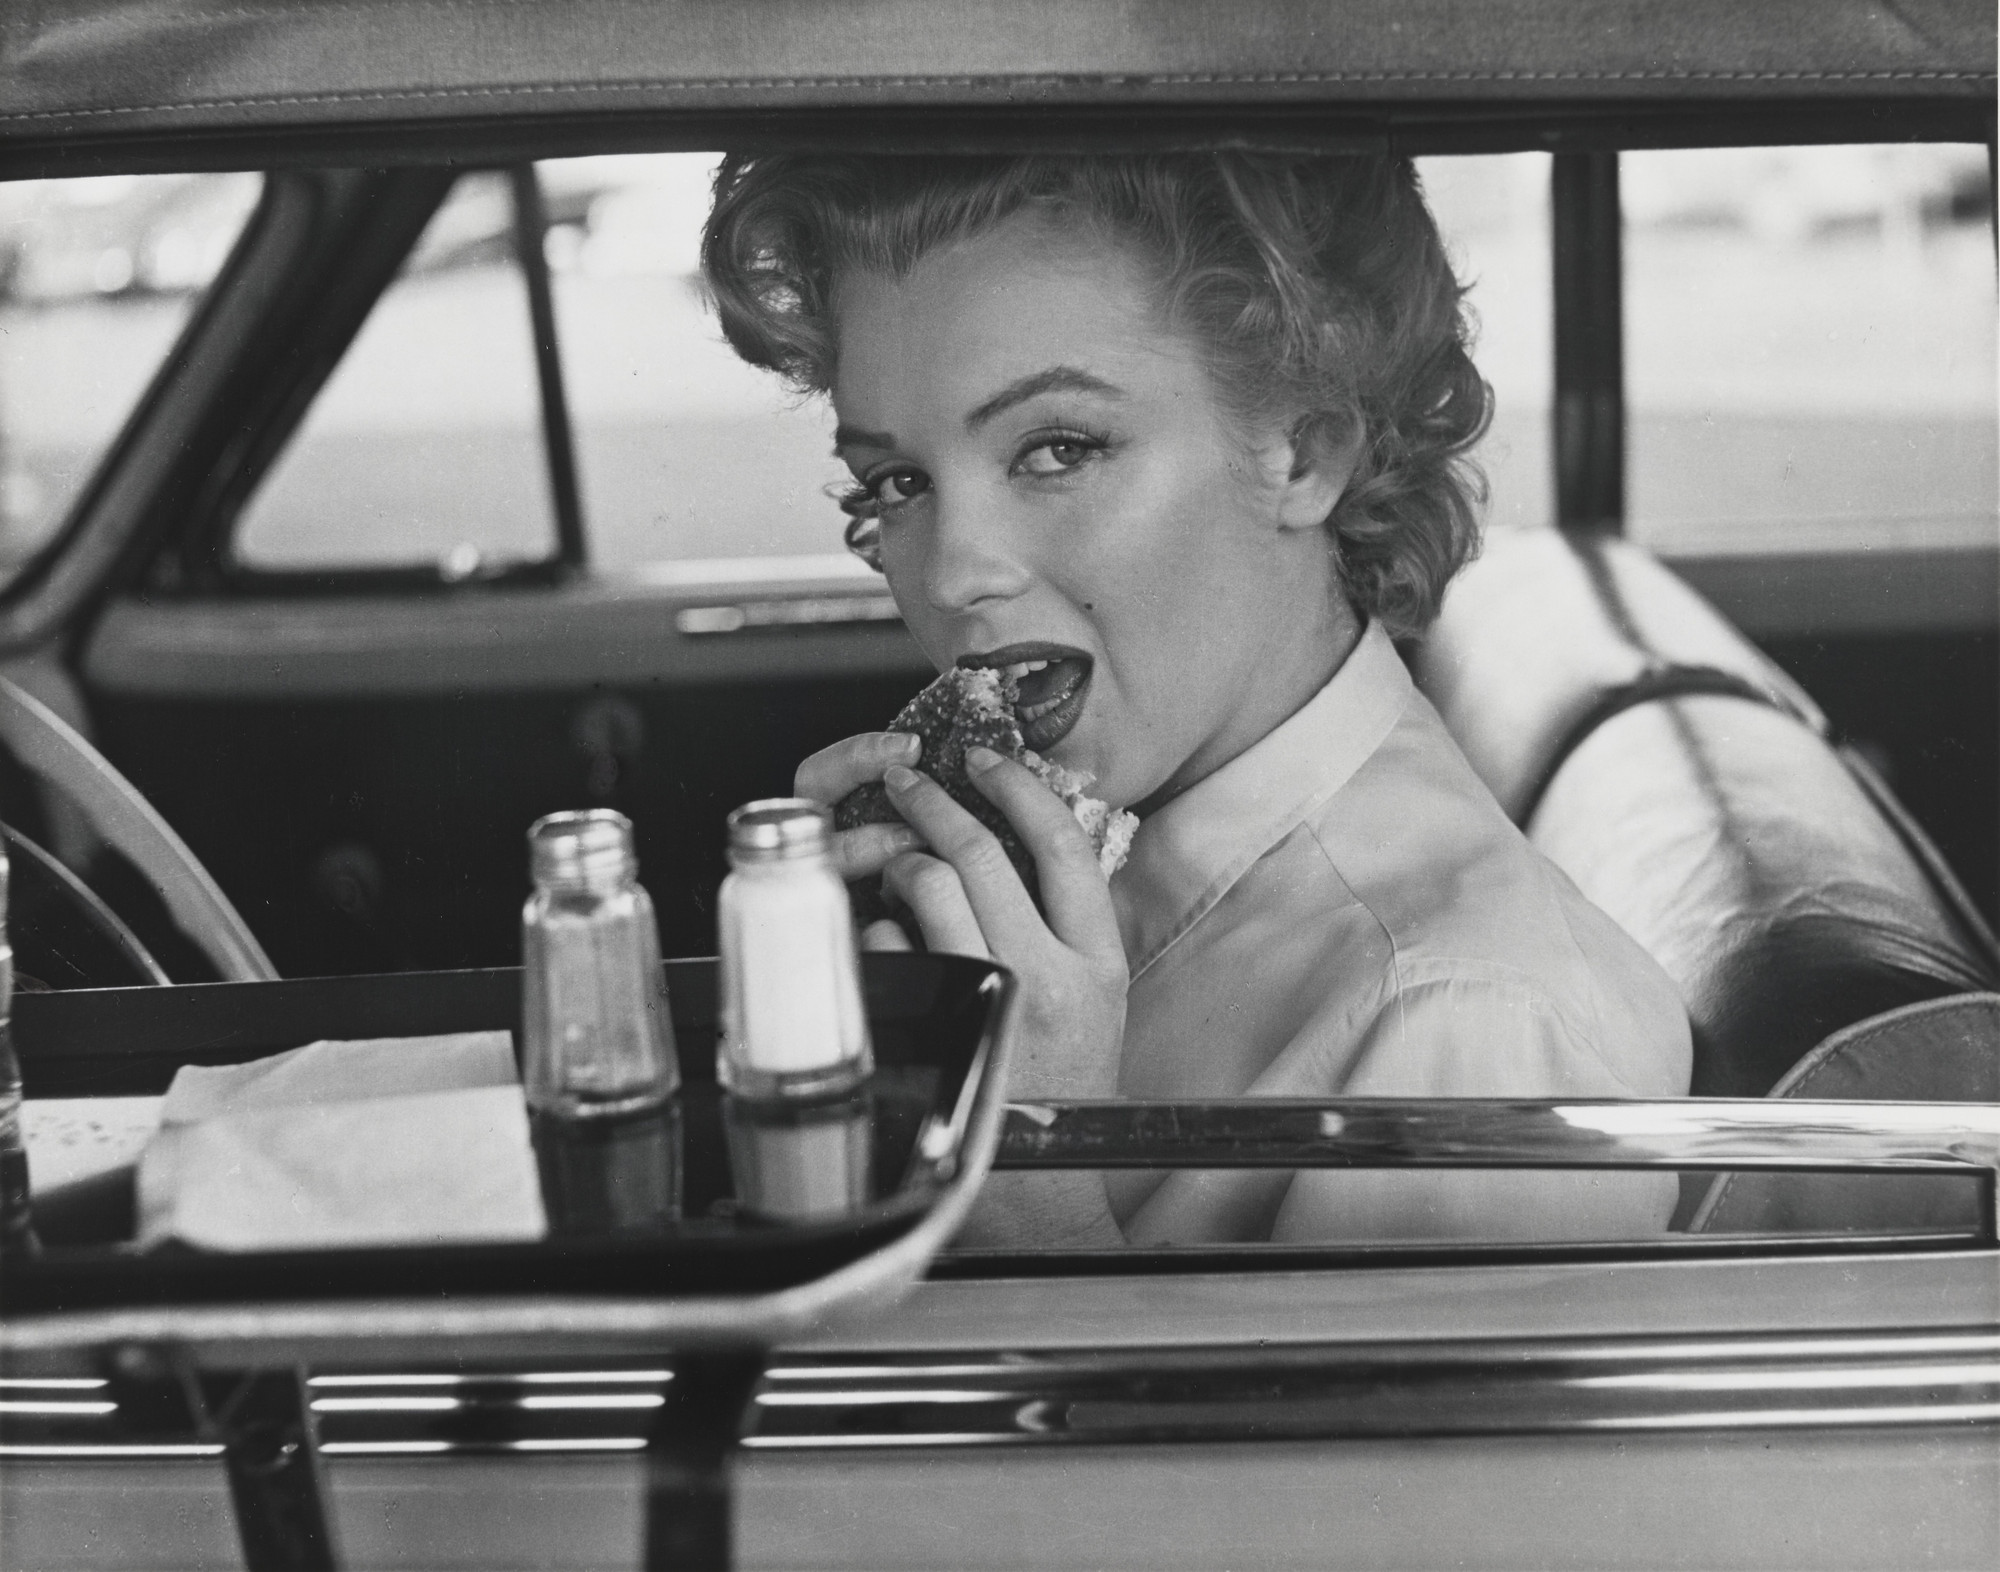 Philippe Halsman. Marilyn Monroe at the Drive-in. 1952